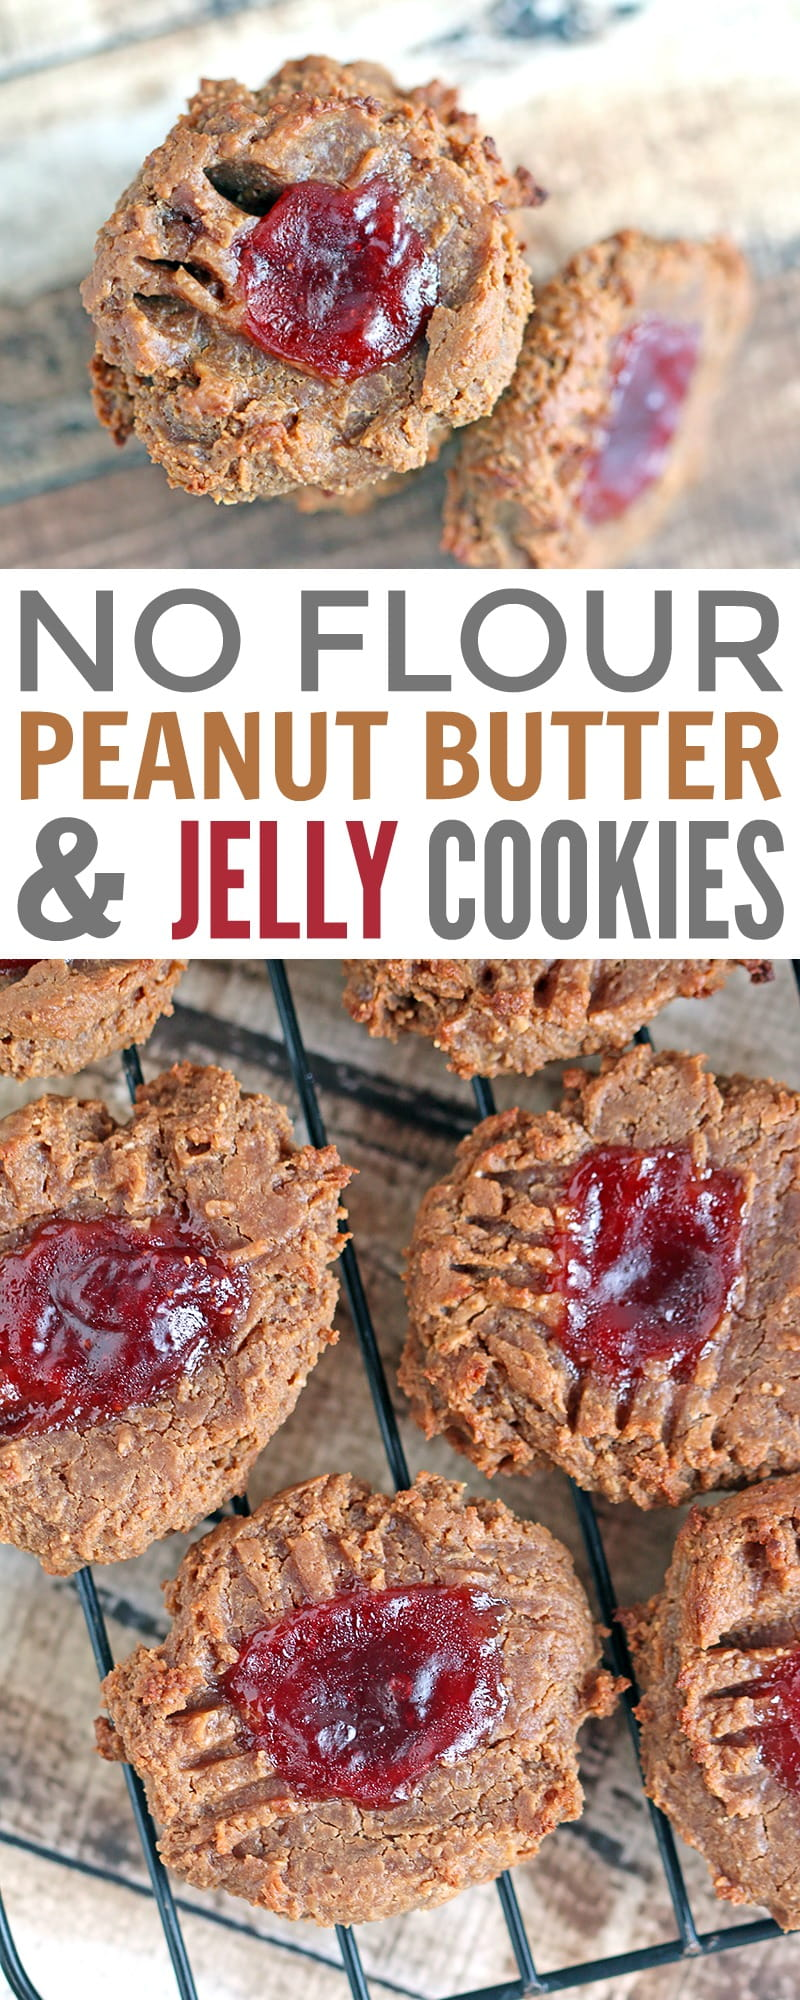 No Flour Peanut Butter & Jelly Cookies - These cookies contain no flour, are gluten-free, dairy-free and are sweetened with applesauce.